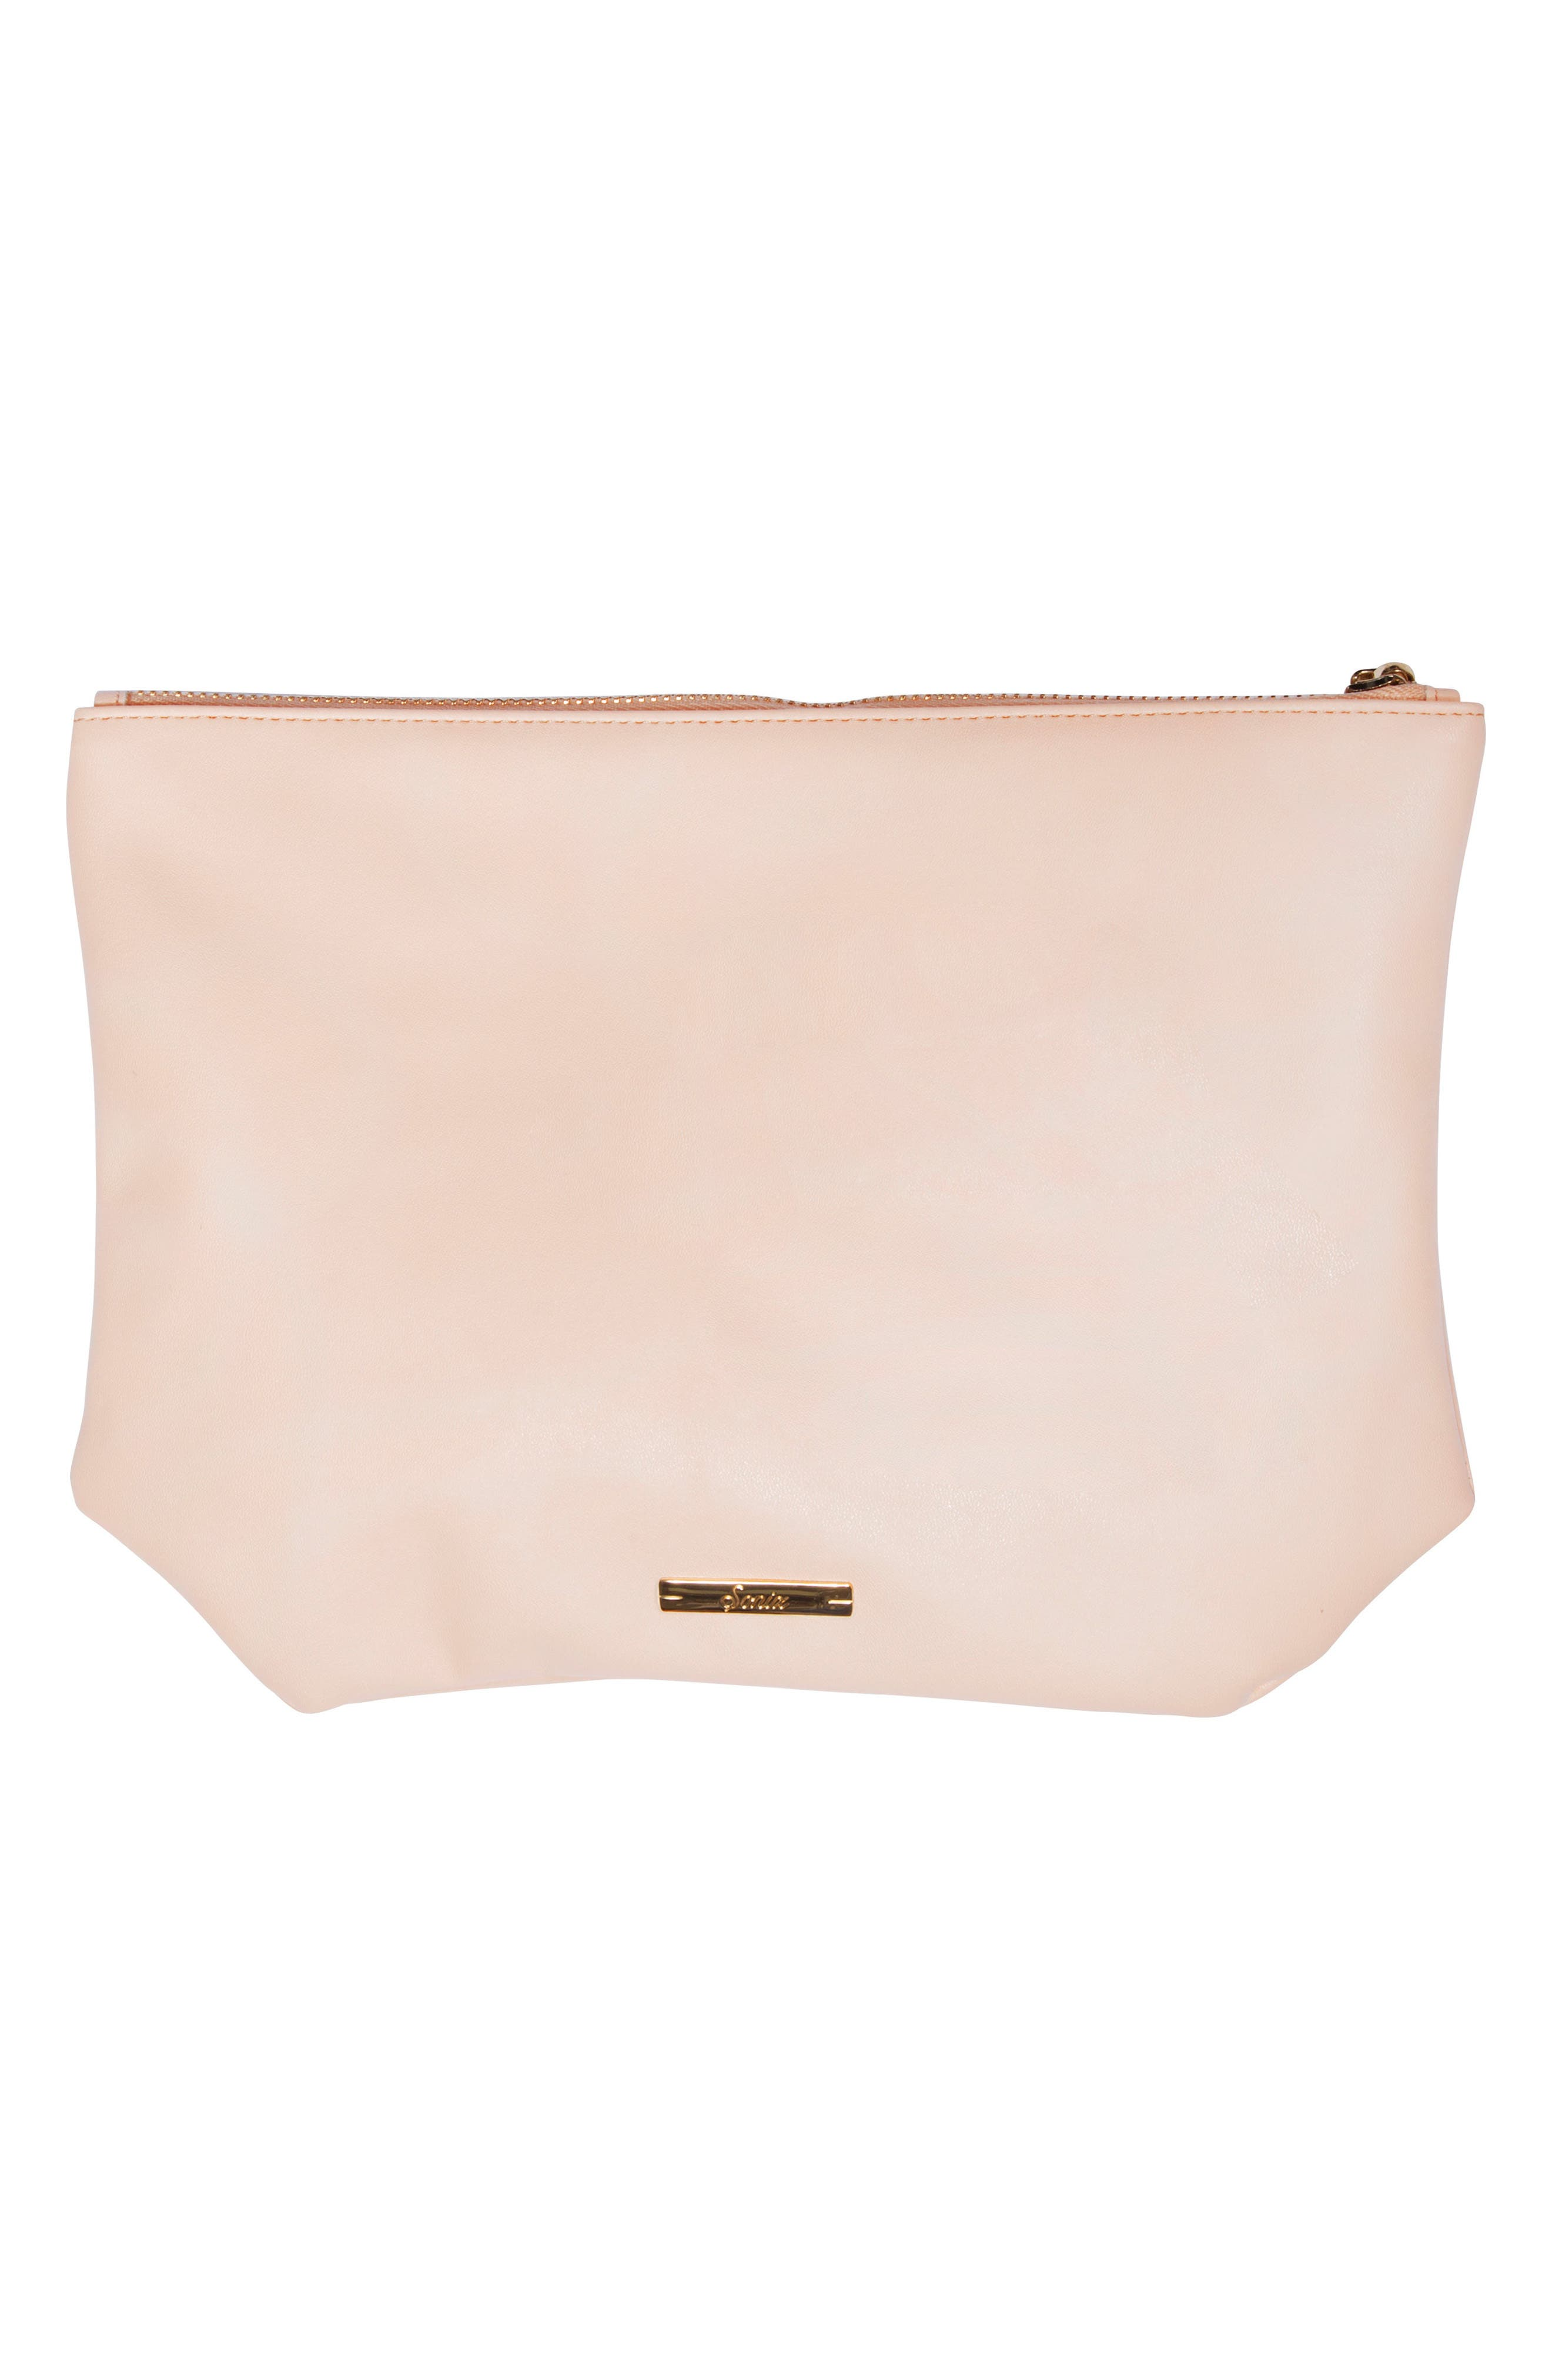 The Future is Female Faux Leather Everyday Pouch,                             Alternate thumbnail 3, color,                             650